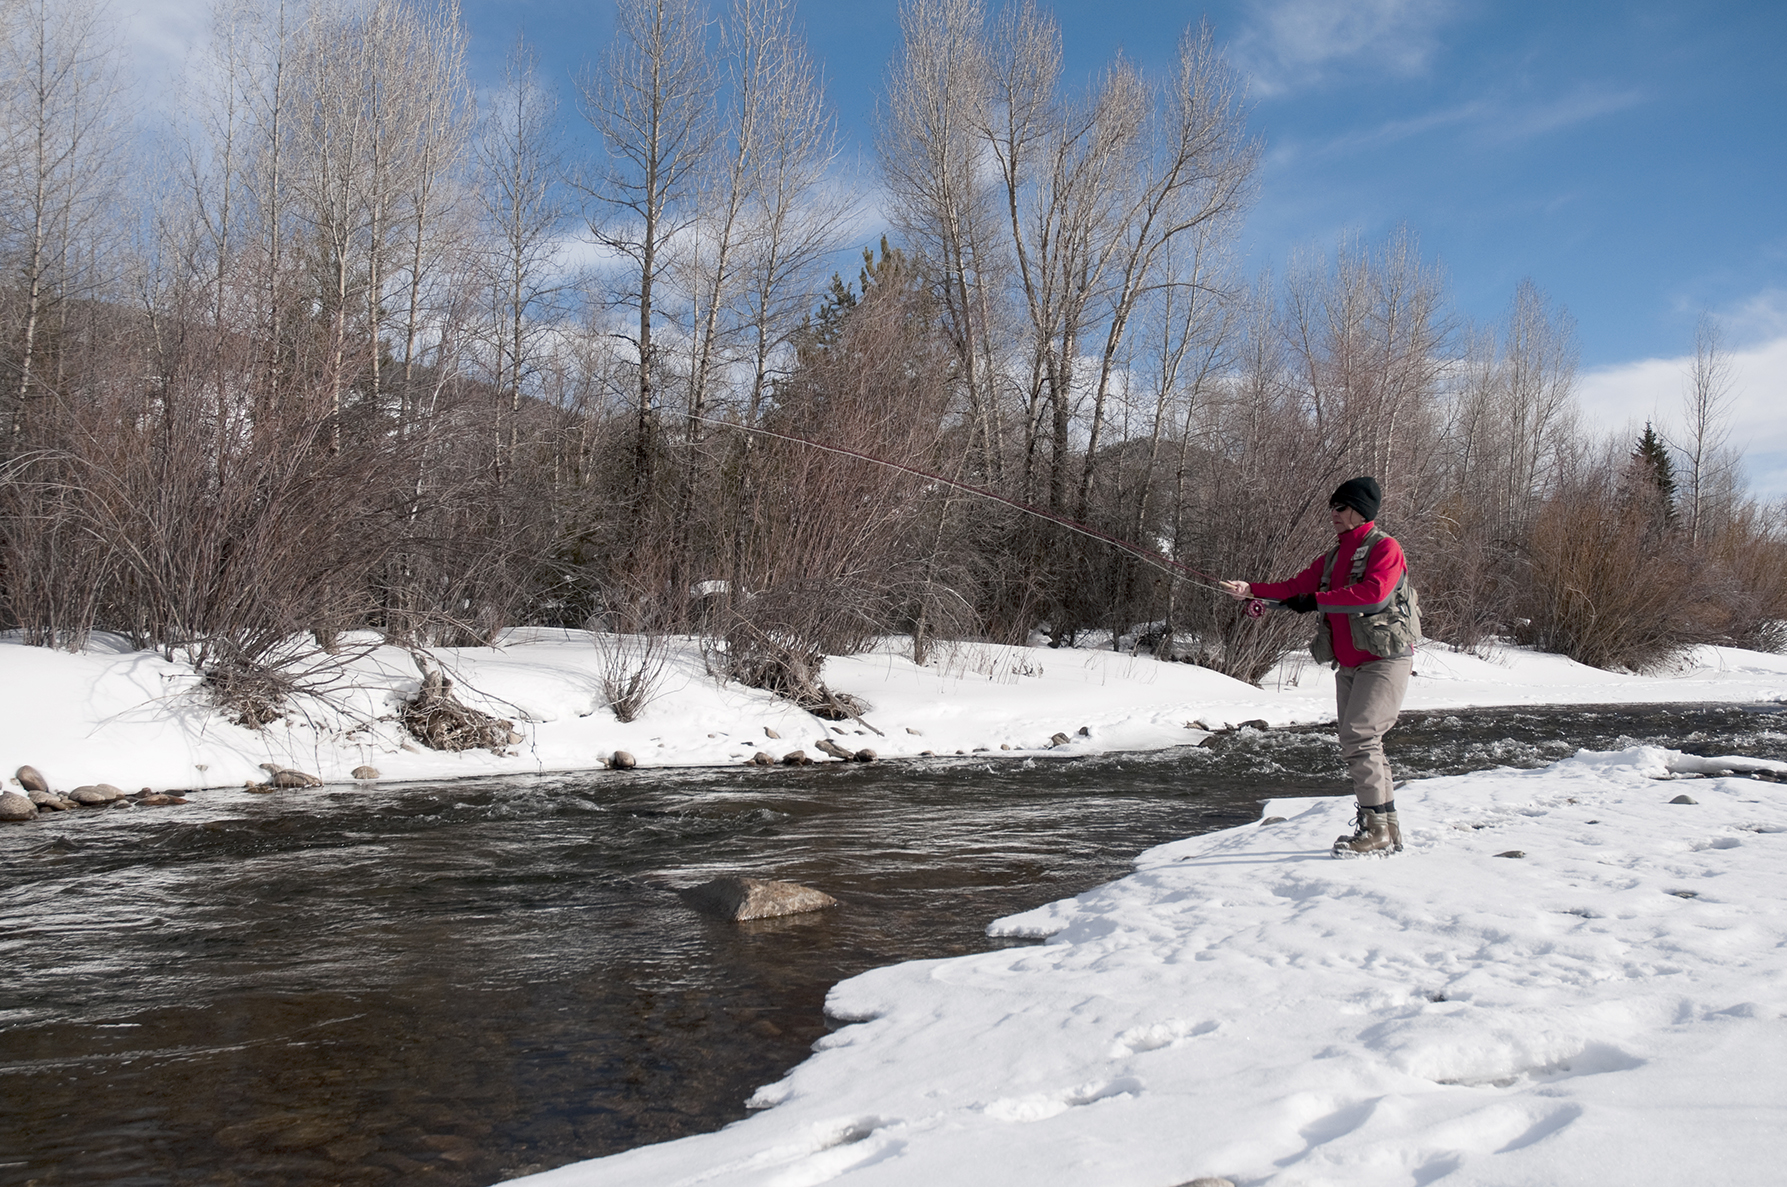 Fishing on a streem with snow-covered banks on each side.